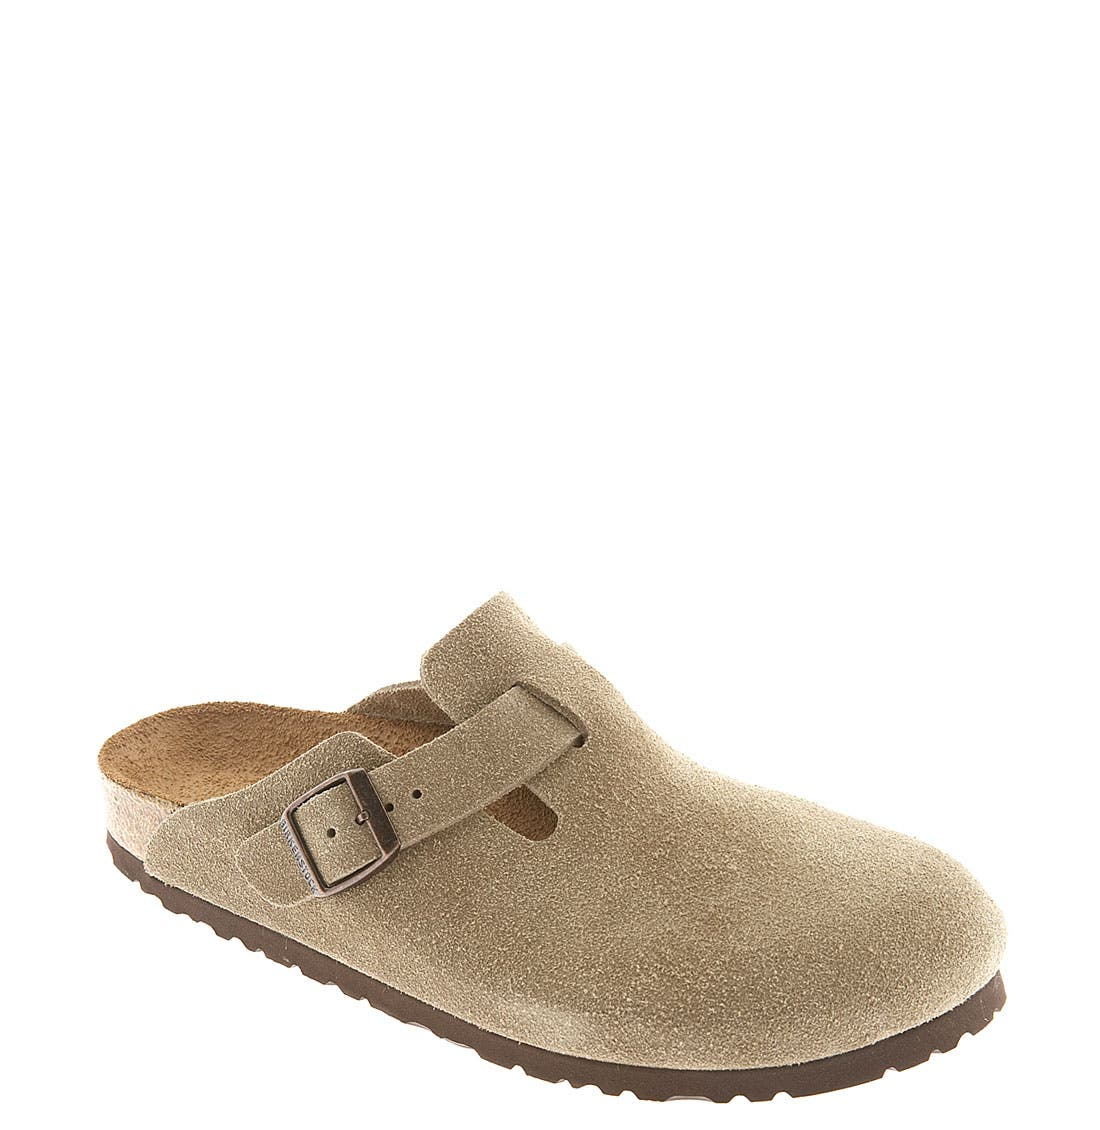 Alternate Image 1 Selected - Birkenstock 'Boston' Classic Suede Clog (Women)